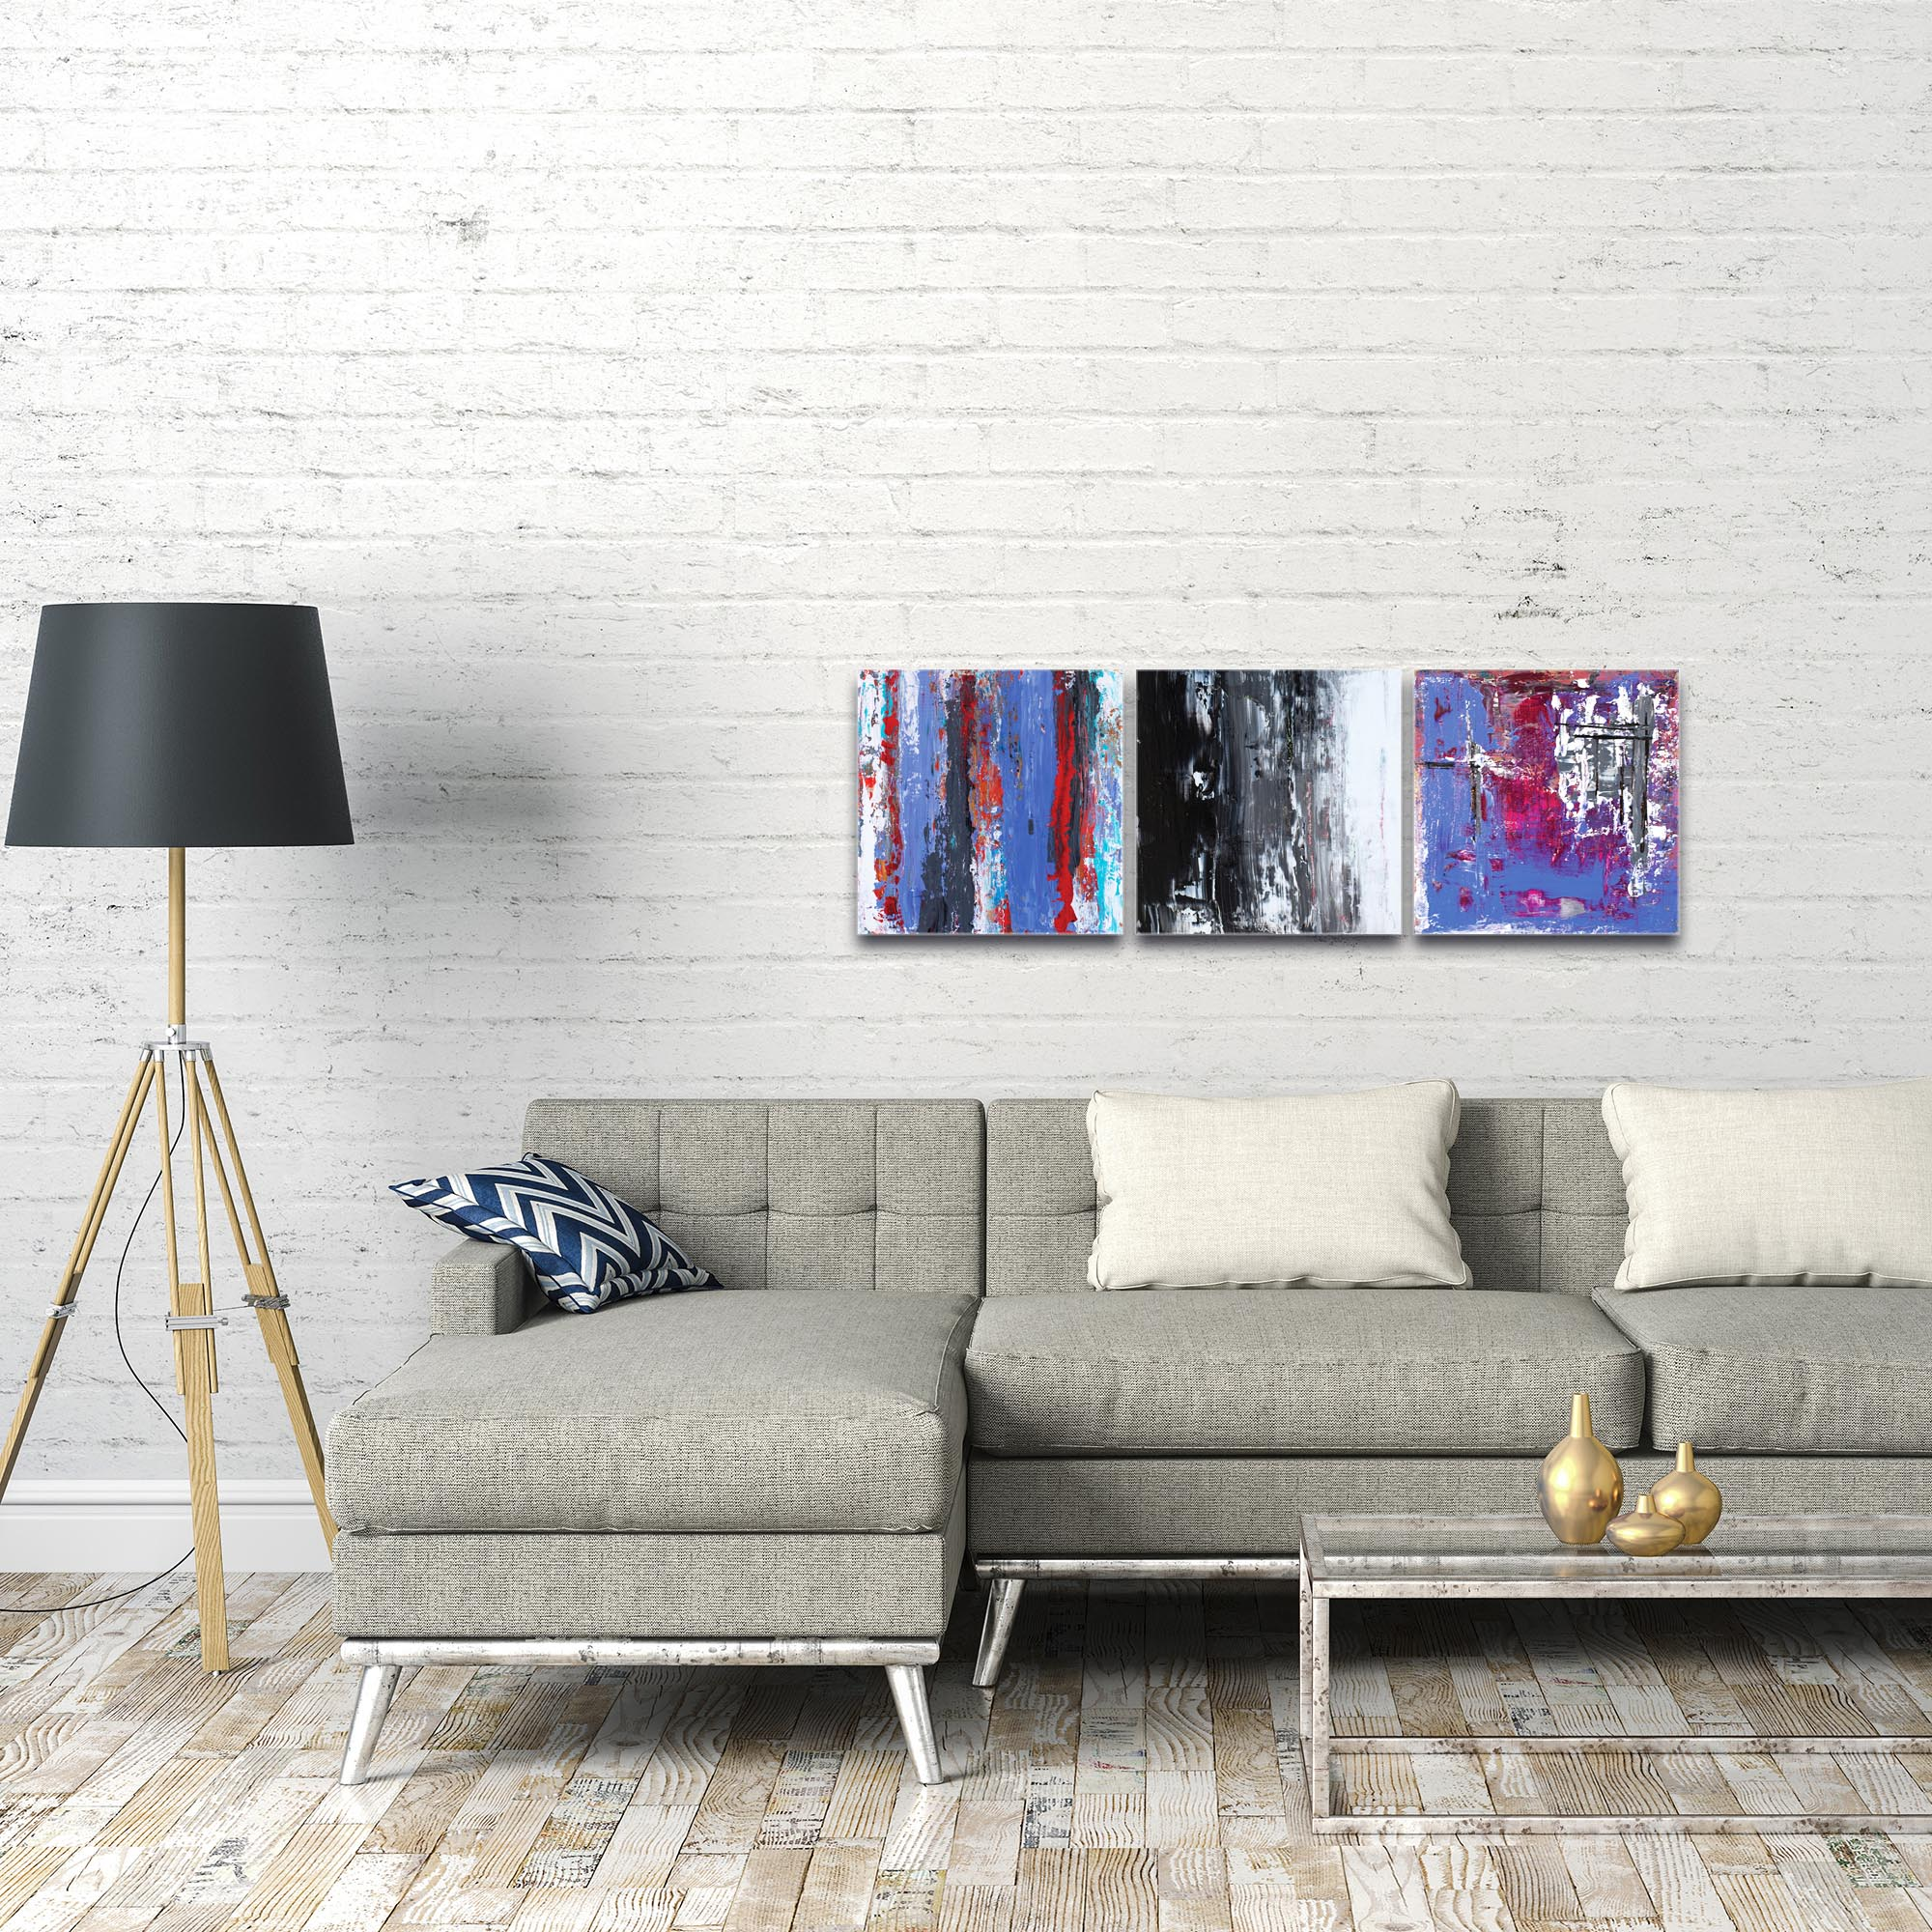 Abstract Wall Art 'Urban Triptych 4' - Urban Decor on Metal or Plexiglass - Image 3